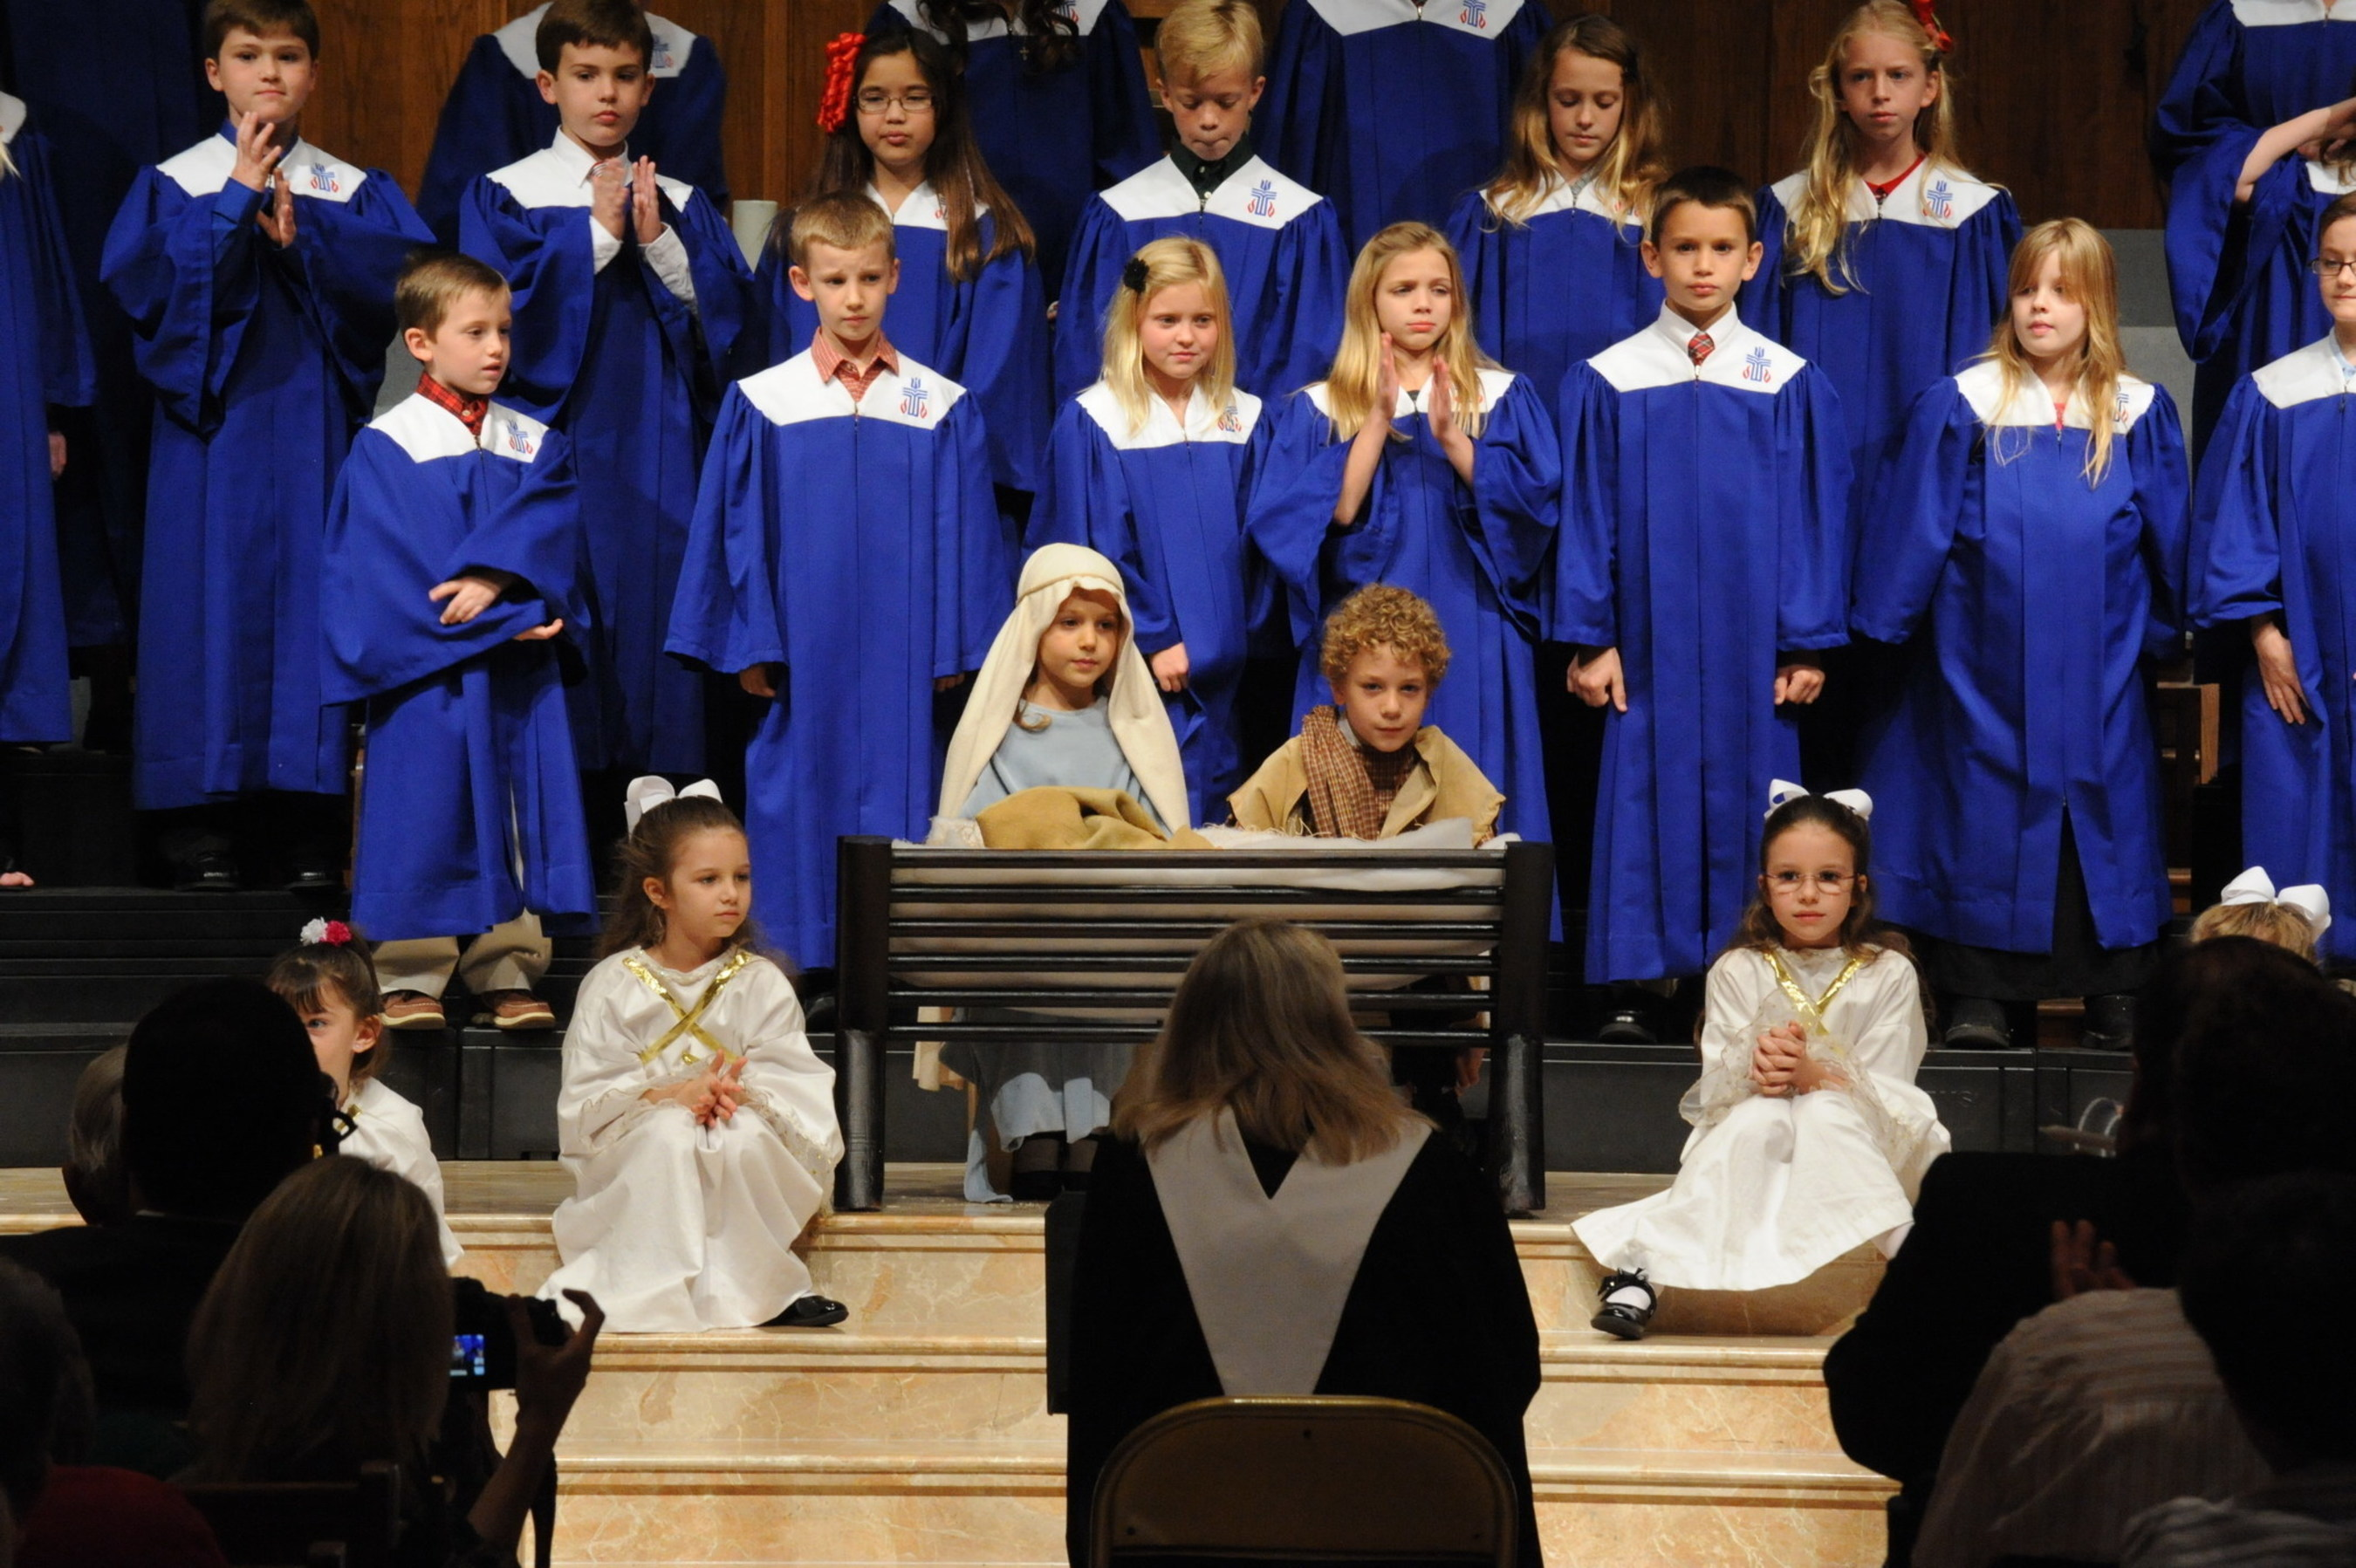 Faith Comes Alive for Advent 2015 at First Presbyterian Church of Fort Lauderdale